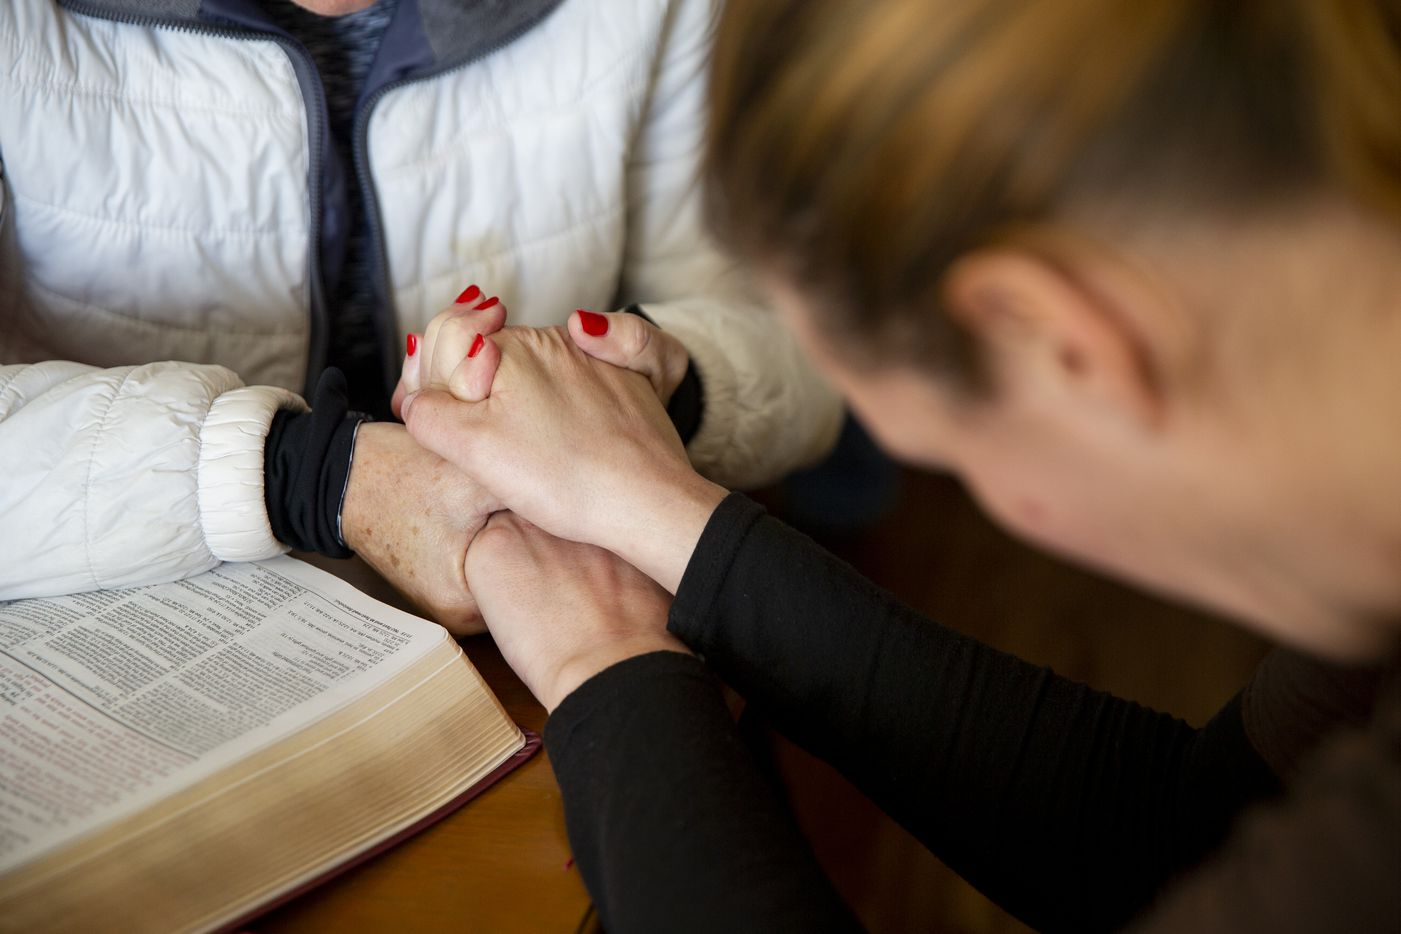 Jennifer Birdd prayed over a member of her congregation on Jan. 5, the first Sunday after losing the S.O.U.L. Church lot. The Birdds have helped many in their congregation recover from difficulties through faith and care.